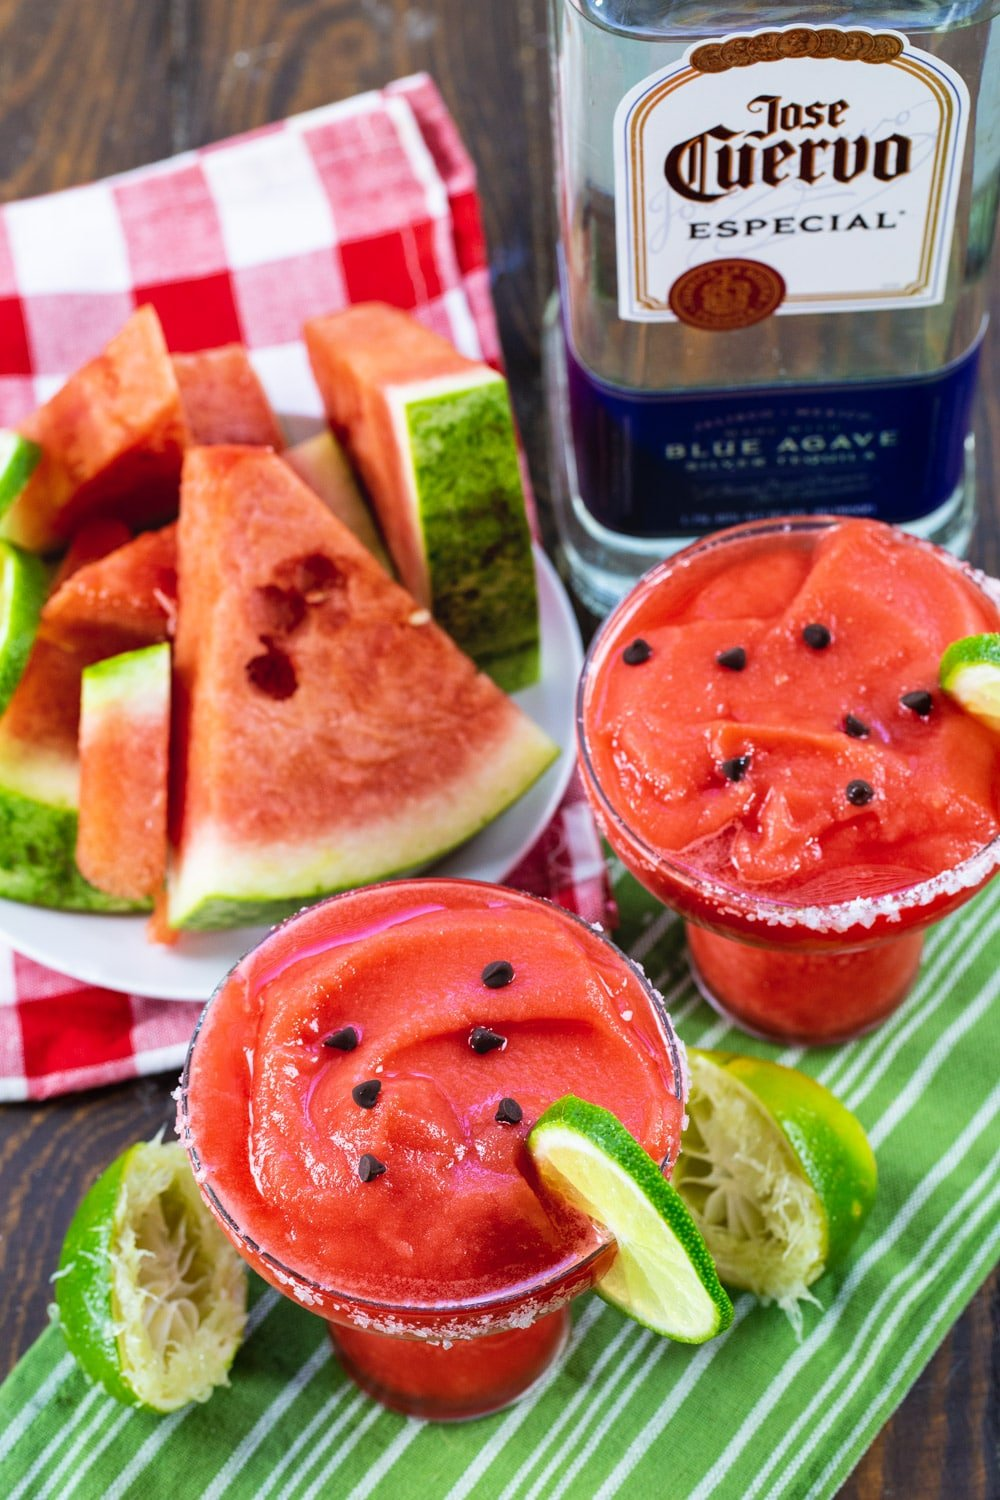 Two Watermelon Margaritas, plate of watermelon, and bottle of tequila.